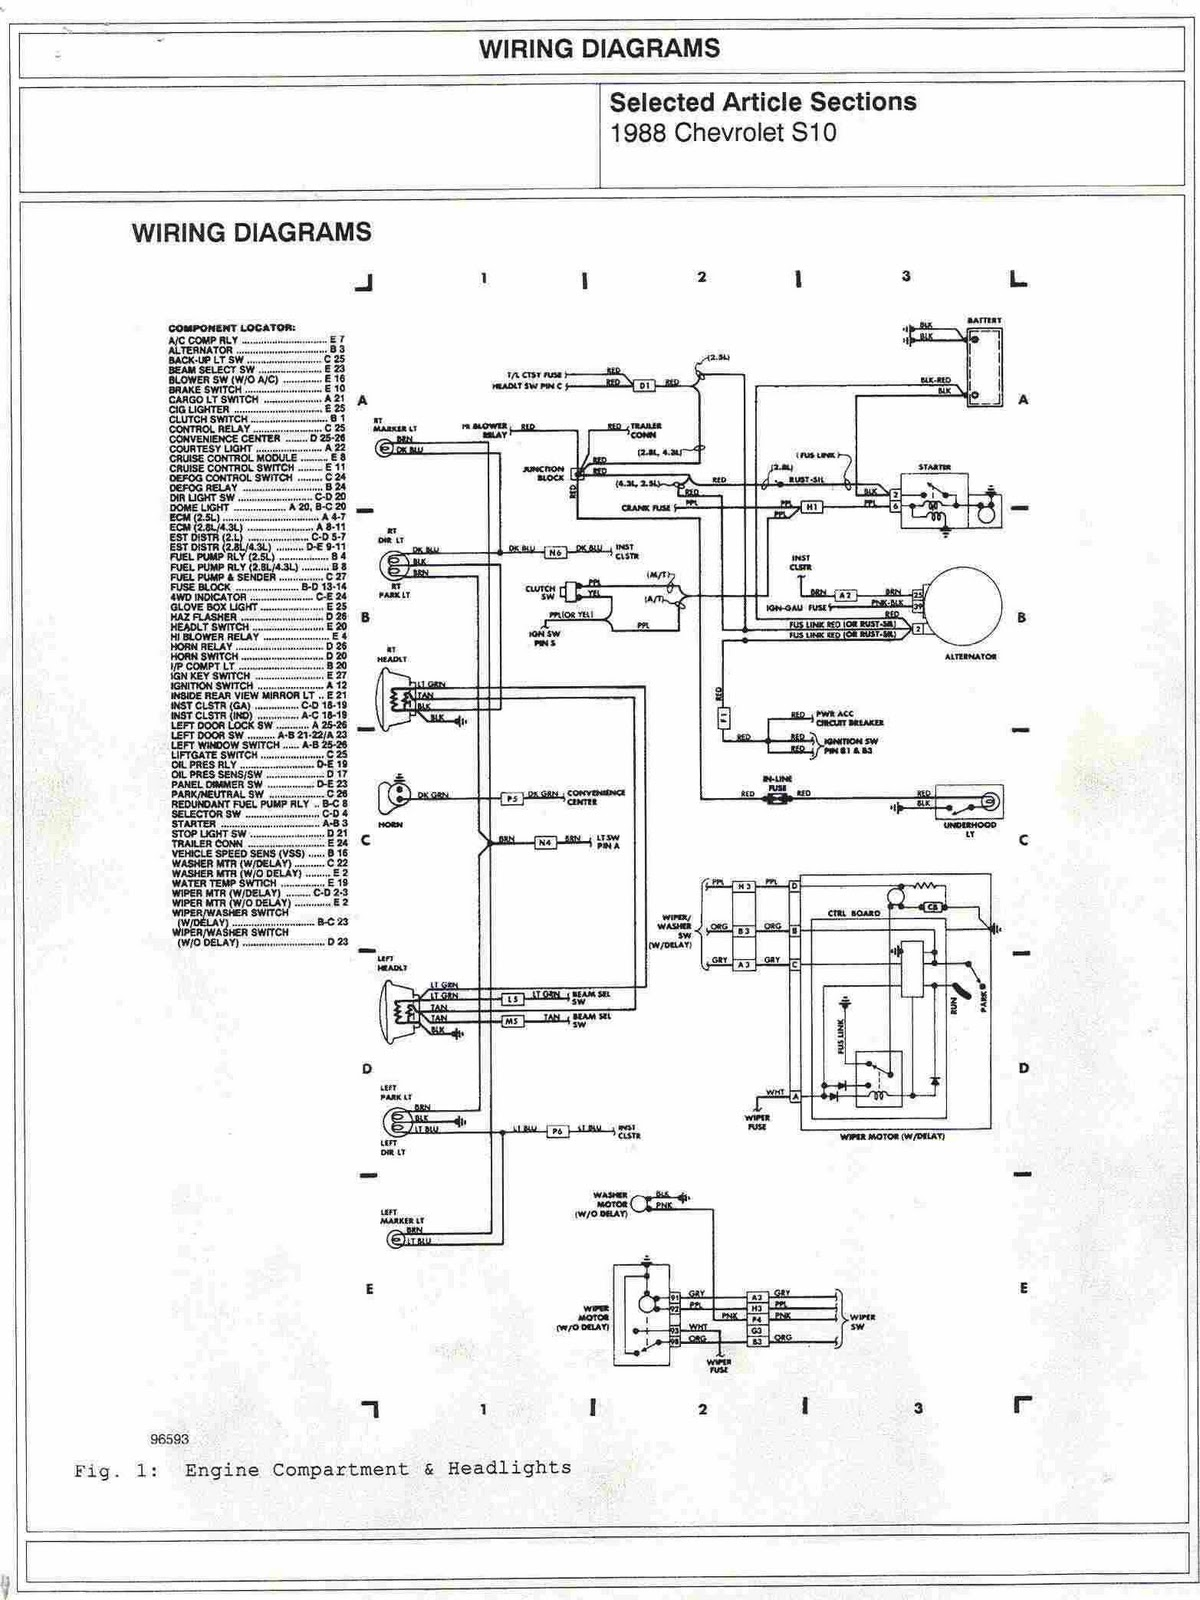 1988+Chevrolet+S10+Engine+Compartment+and+Headlights+Wiring+Diagrams 1988 chevy truck wiring diagram truck wiring schematics \u2022 wiring  at fashall.co